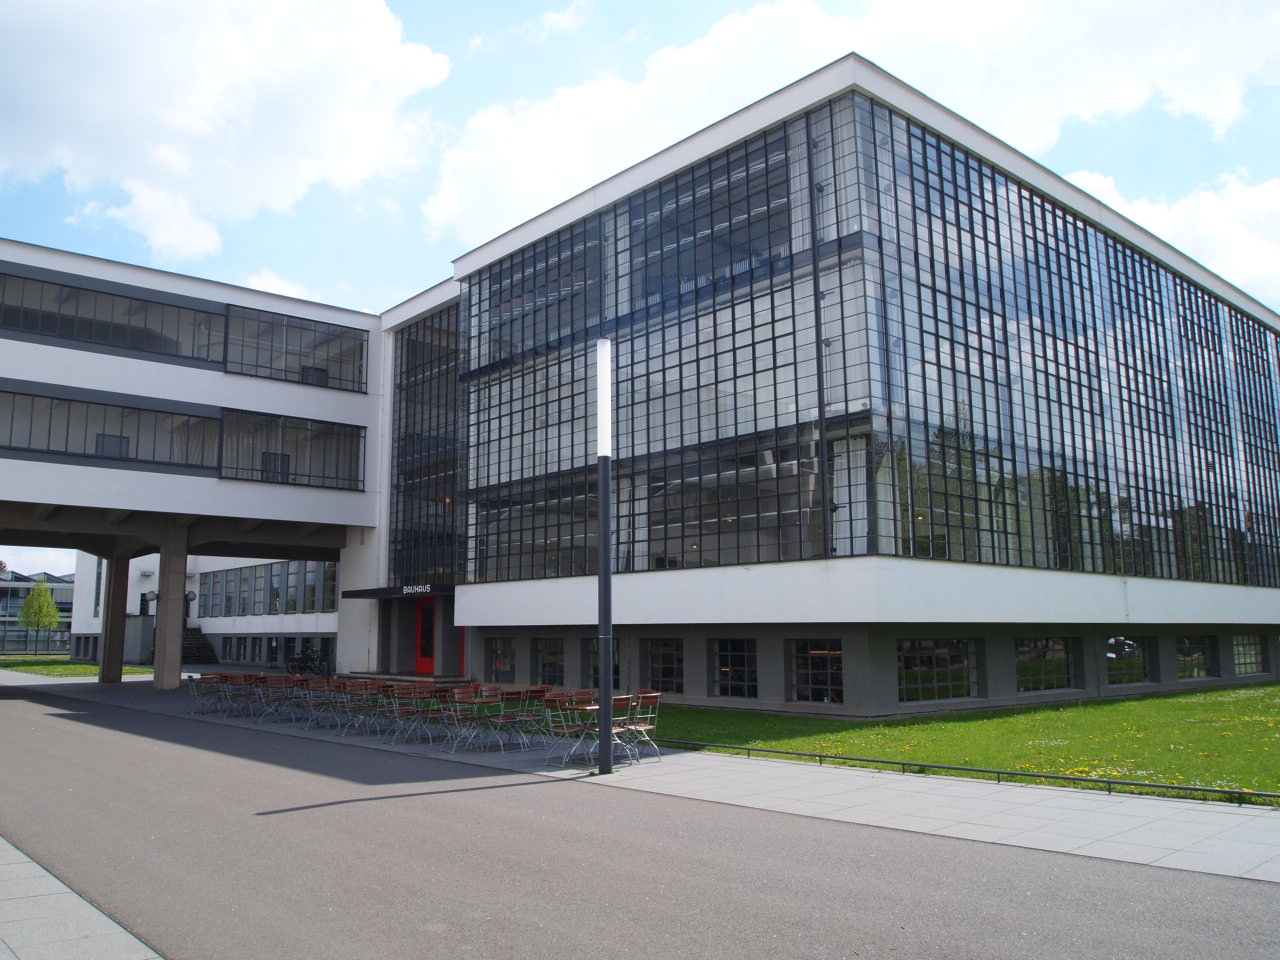 the bauhaus dessau Dessau is the city most closely associated with the bauhaus this is where the school of design was active for the longest period of time and where it experienced its golden period between 1925 and 1932.